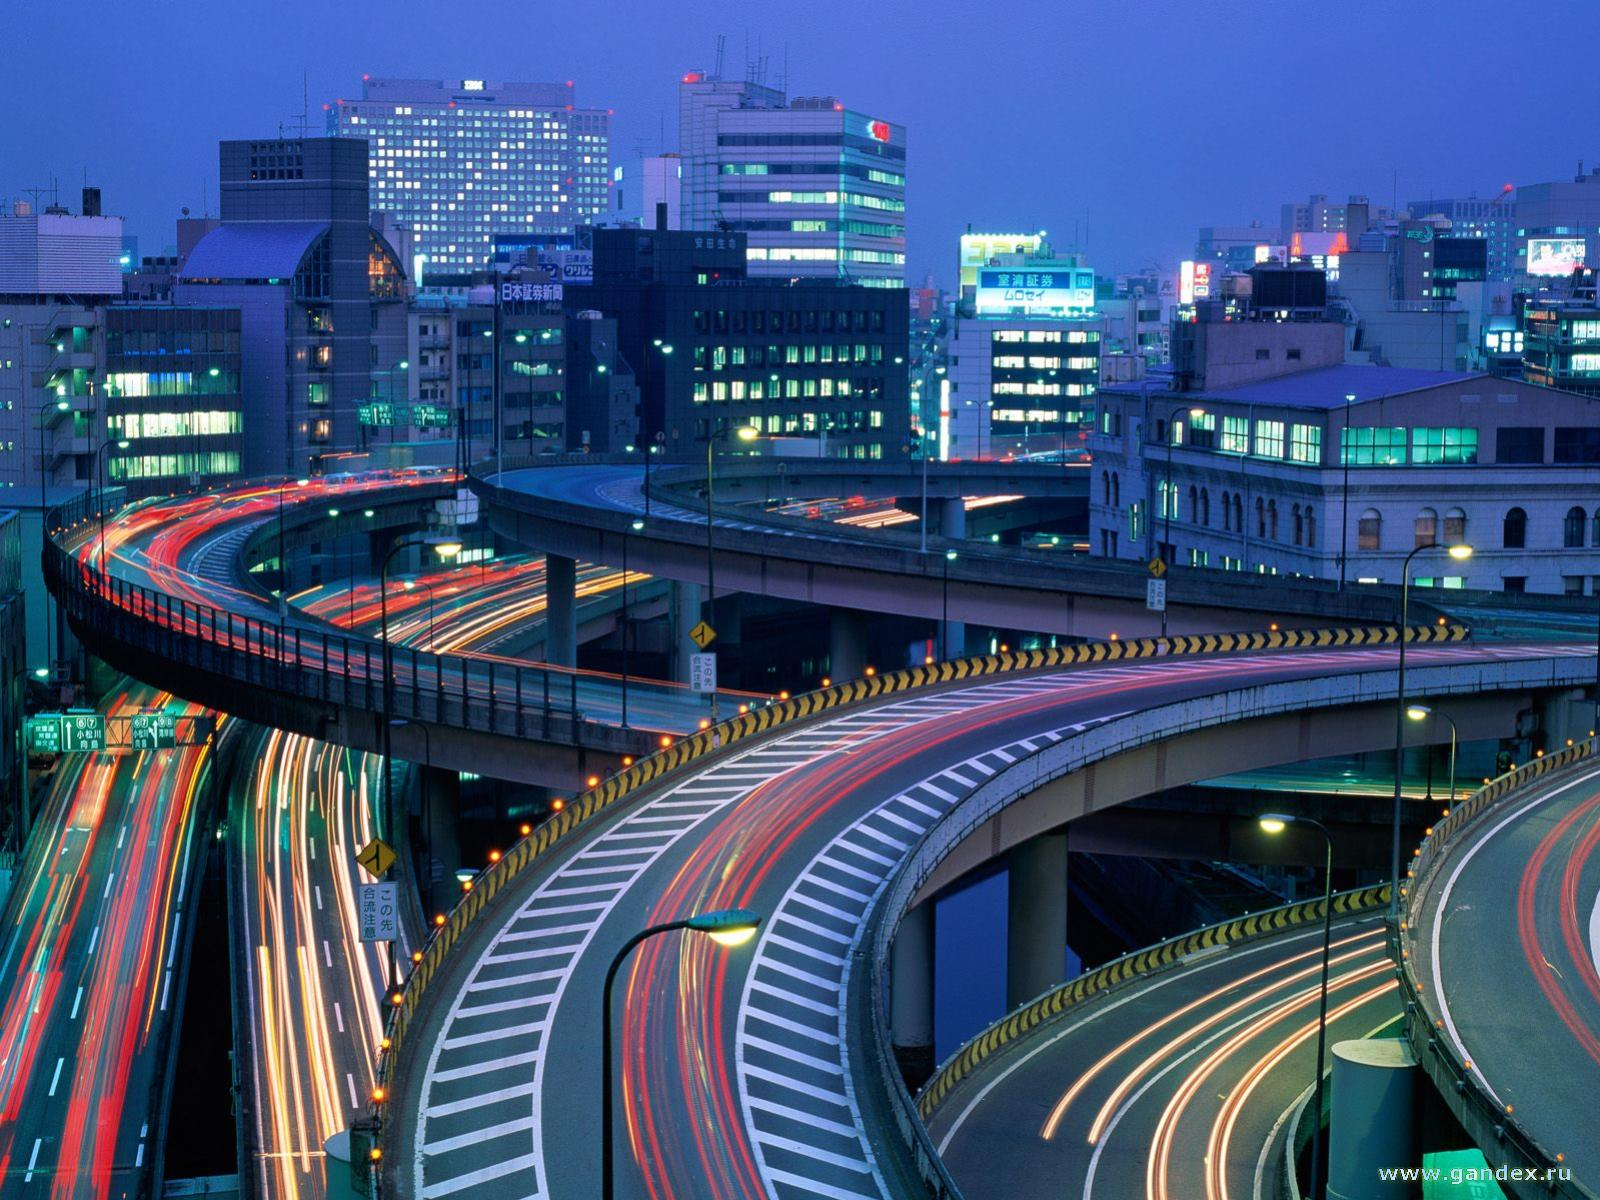 Tokyo City at night - wallpaper, the theme of